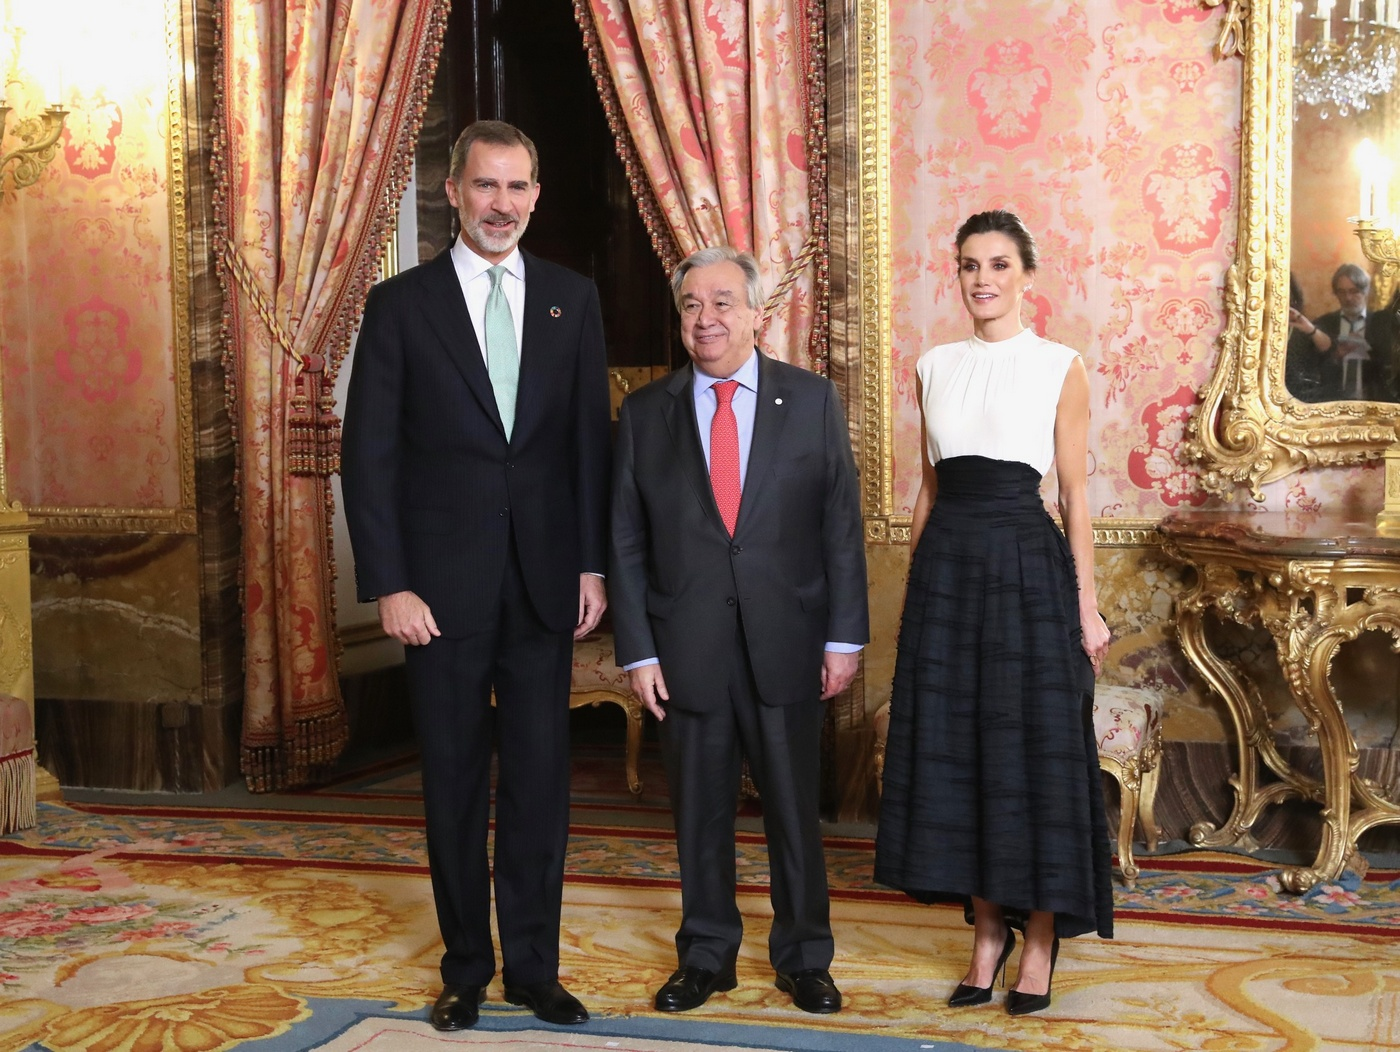 King Felipe and Queen Letizia of Spain hosted a reception for the United Nations Conference on Climate Change (COP25) atendees